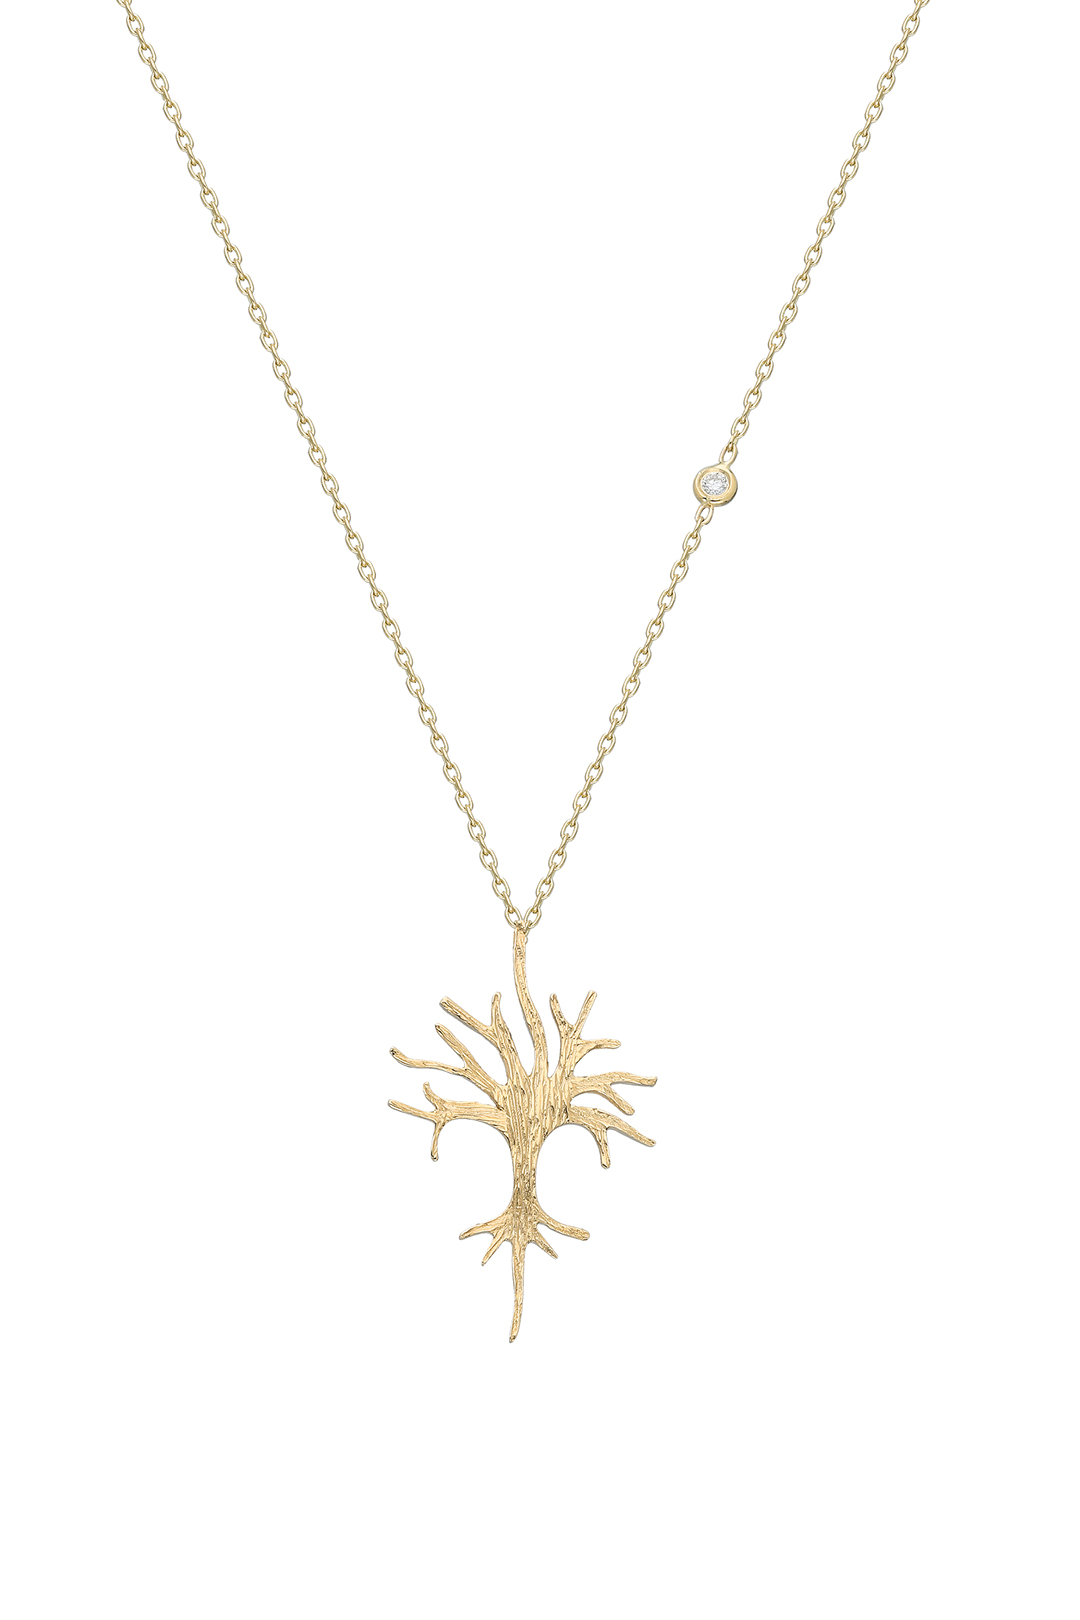 LIFE TREE NECKLACE